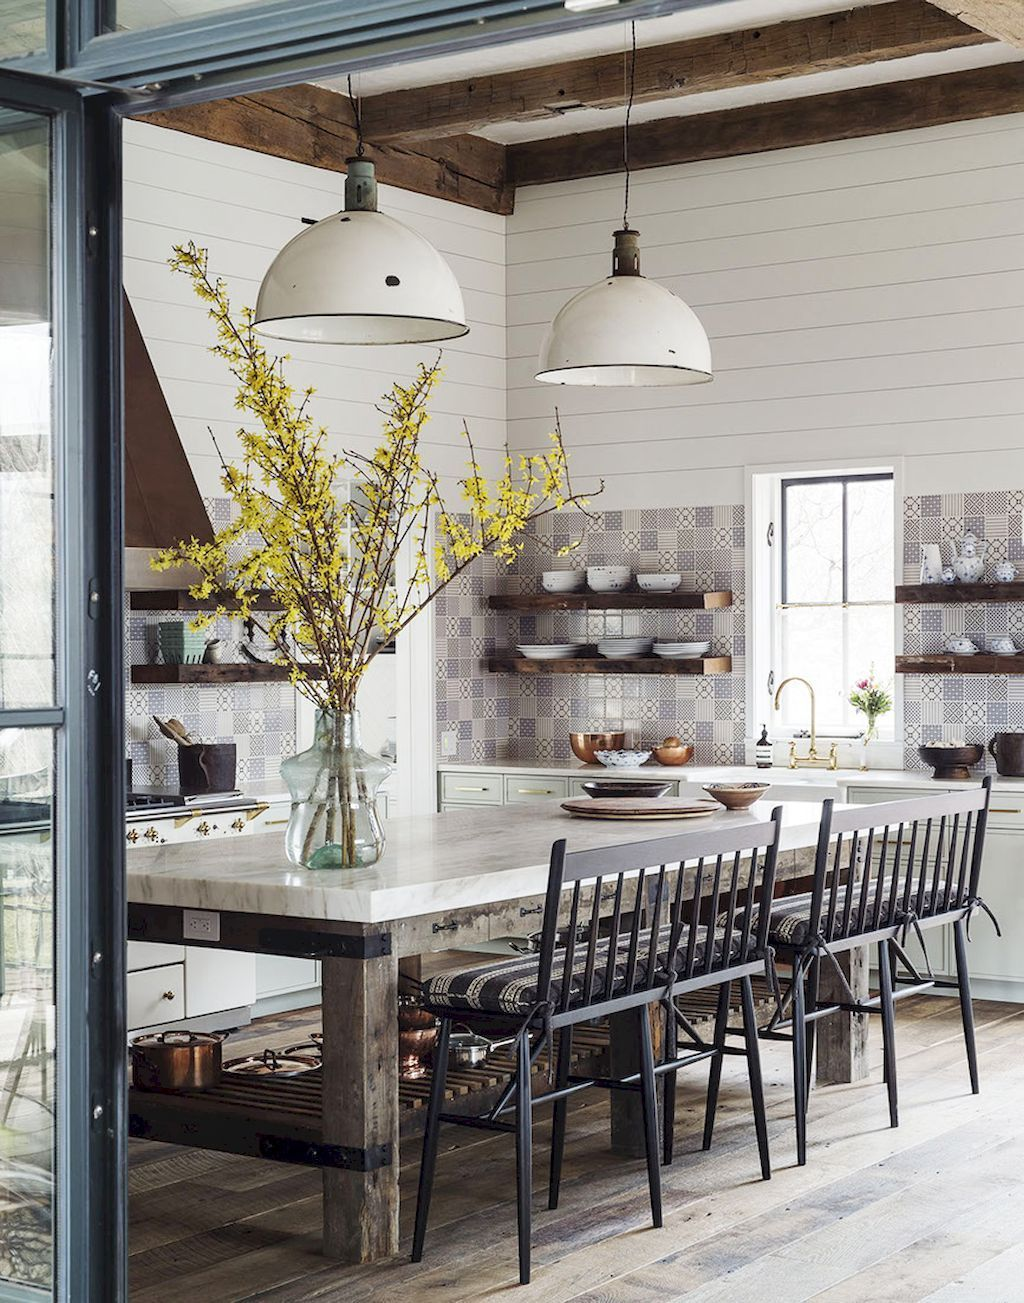 modern kitchen tables 6 ft island 70 stylish and inspired farmhouse ideas designs http prohousedecor